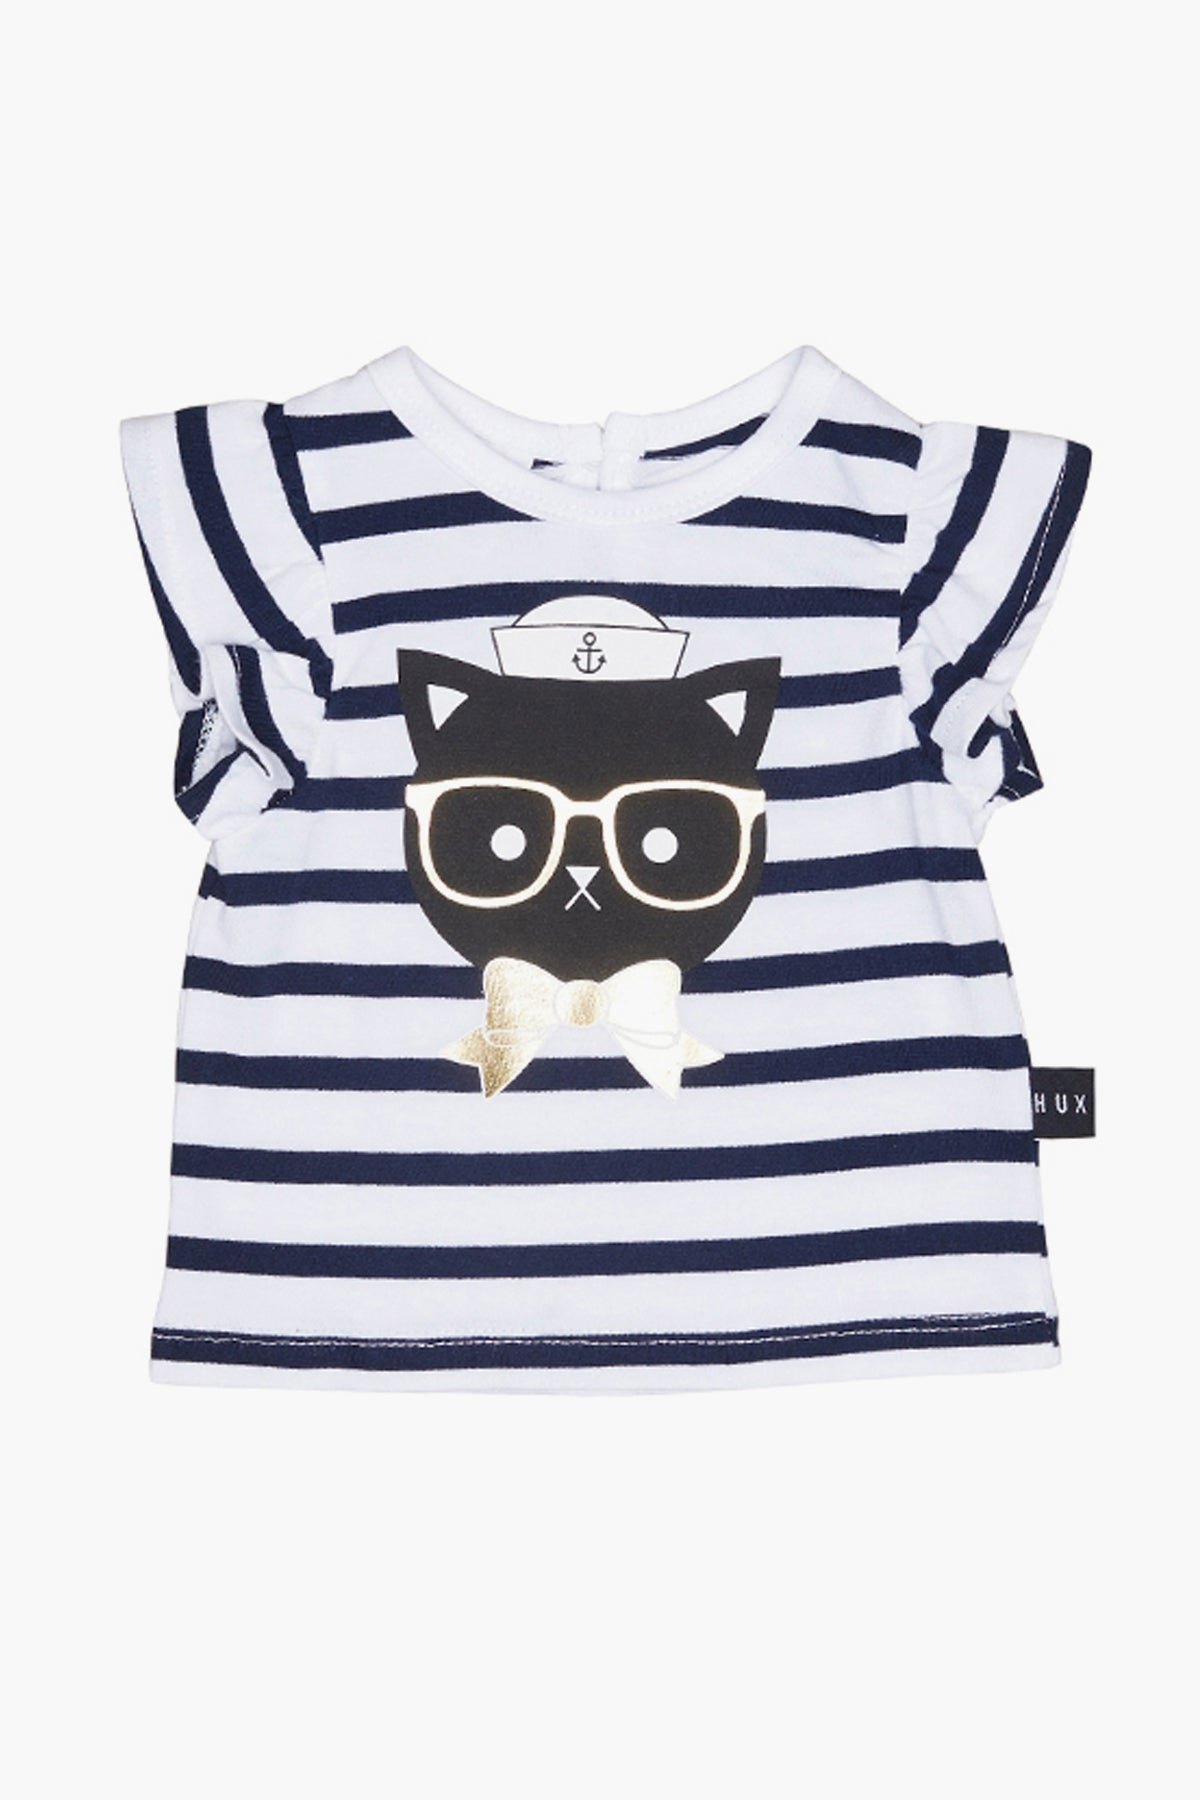 Huxbaby Sailor Cat Frill Top